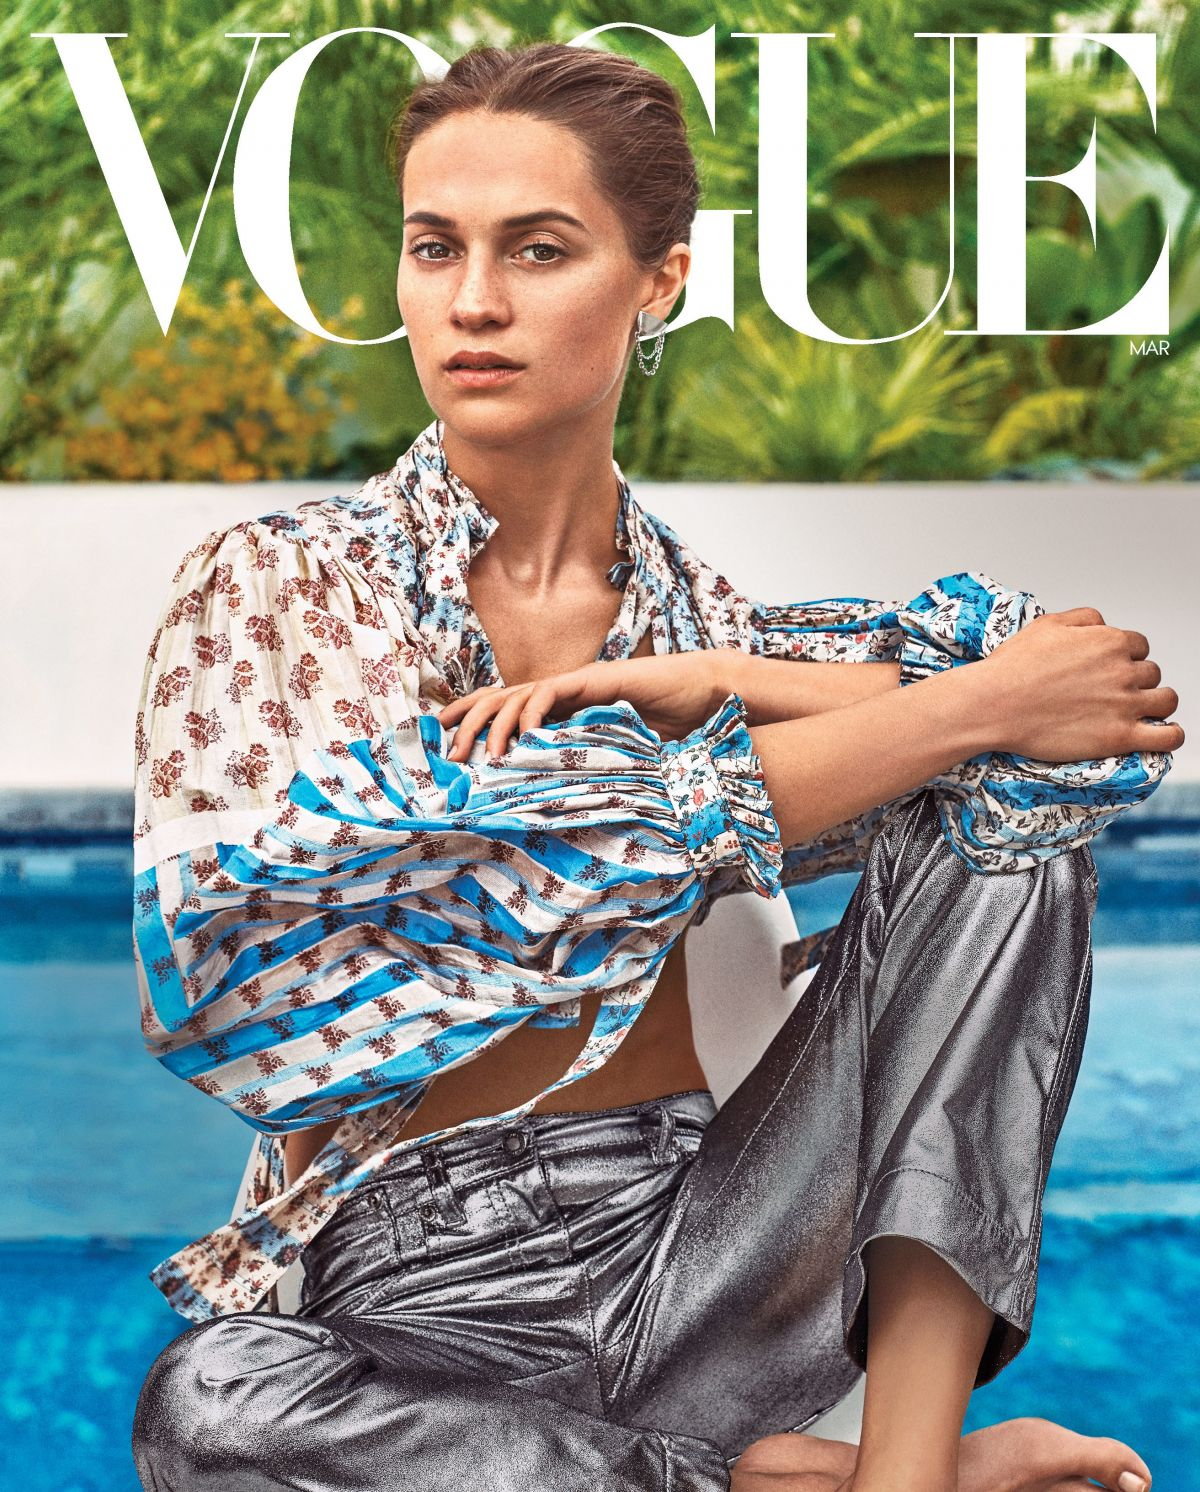 Alicia Vikander In Vogue Magazine March 2018